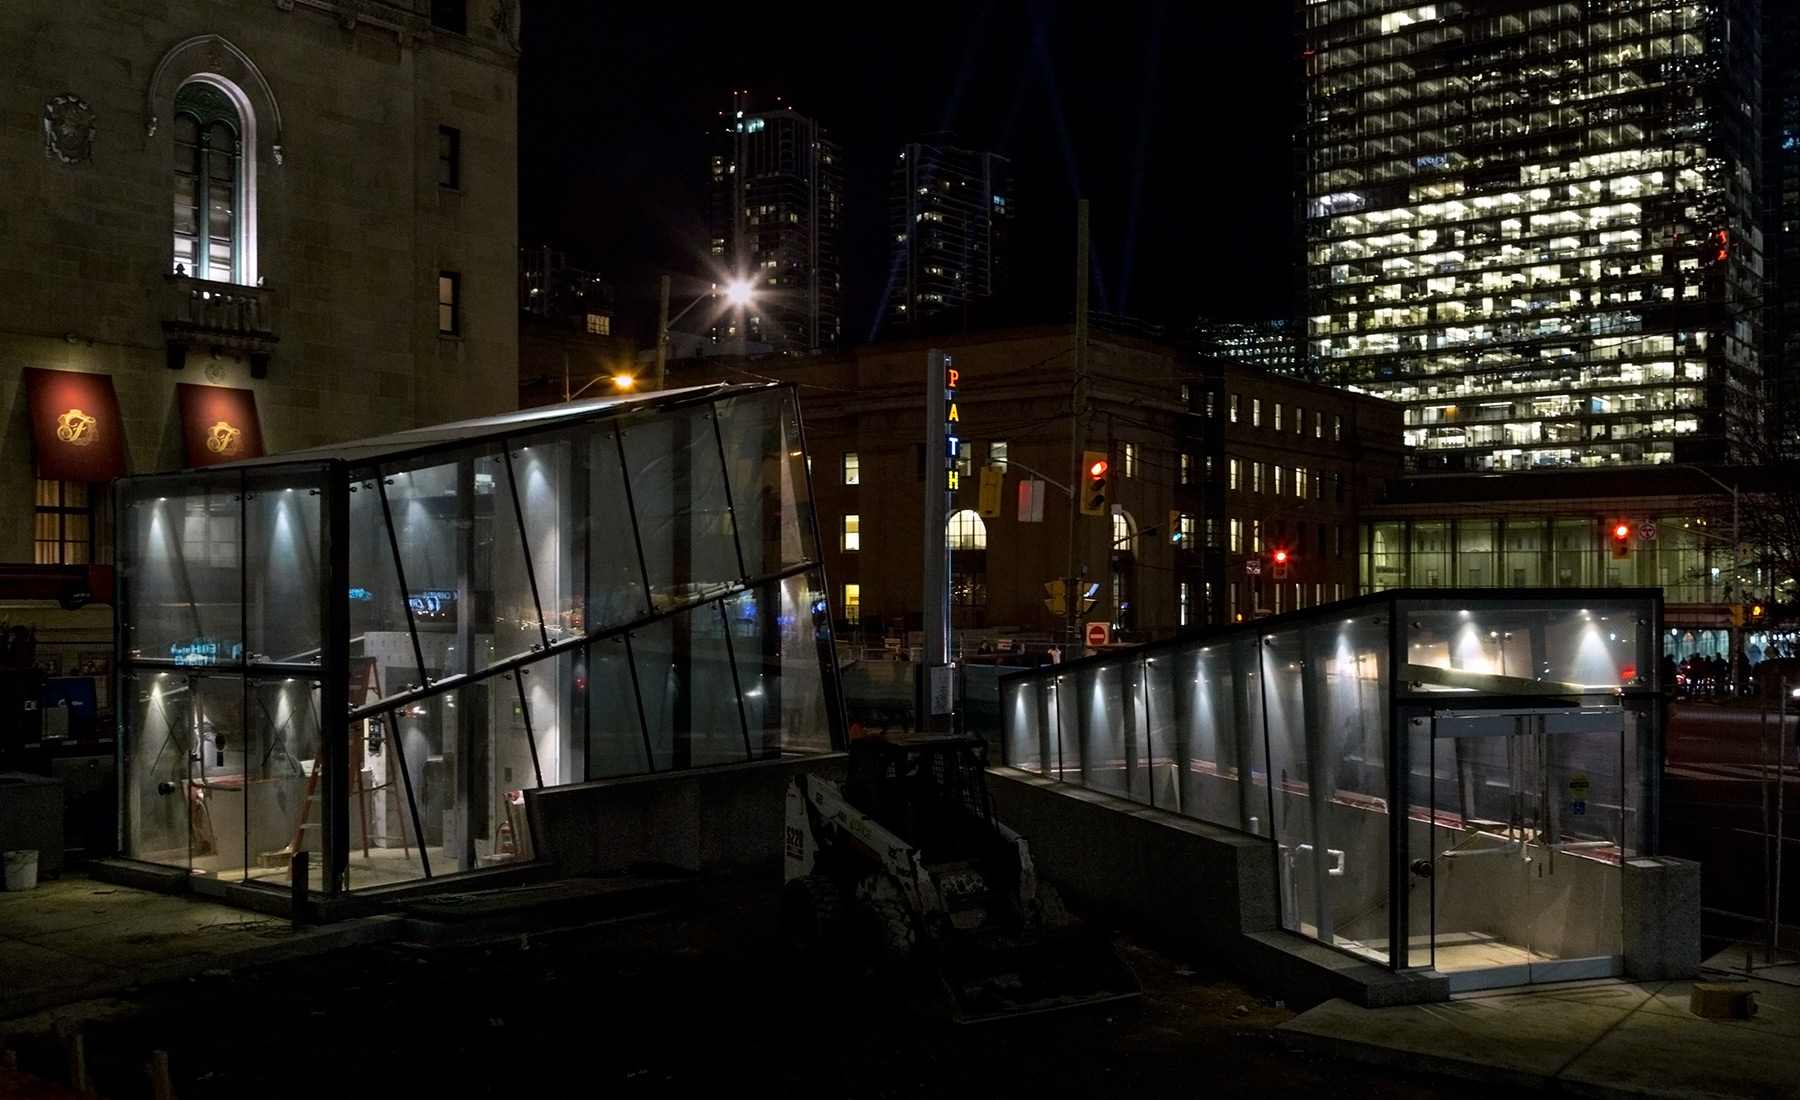 20141205. Toronto's underground PATH system will soon open a N-S